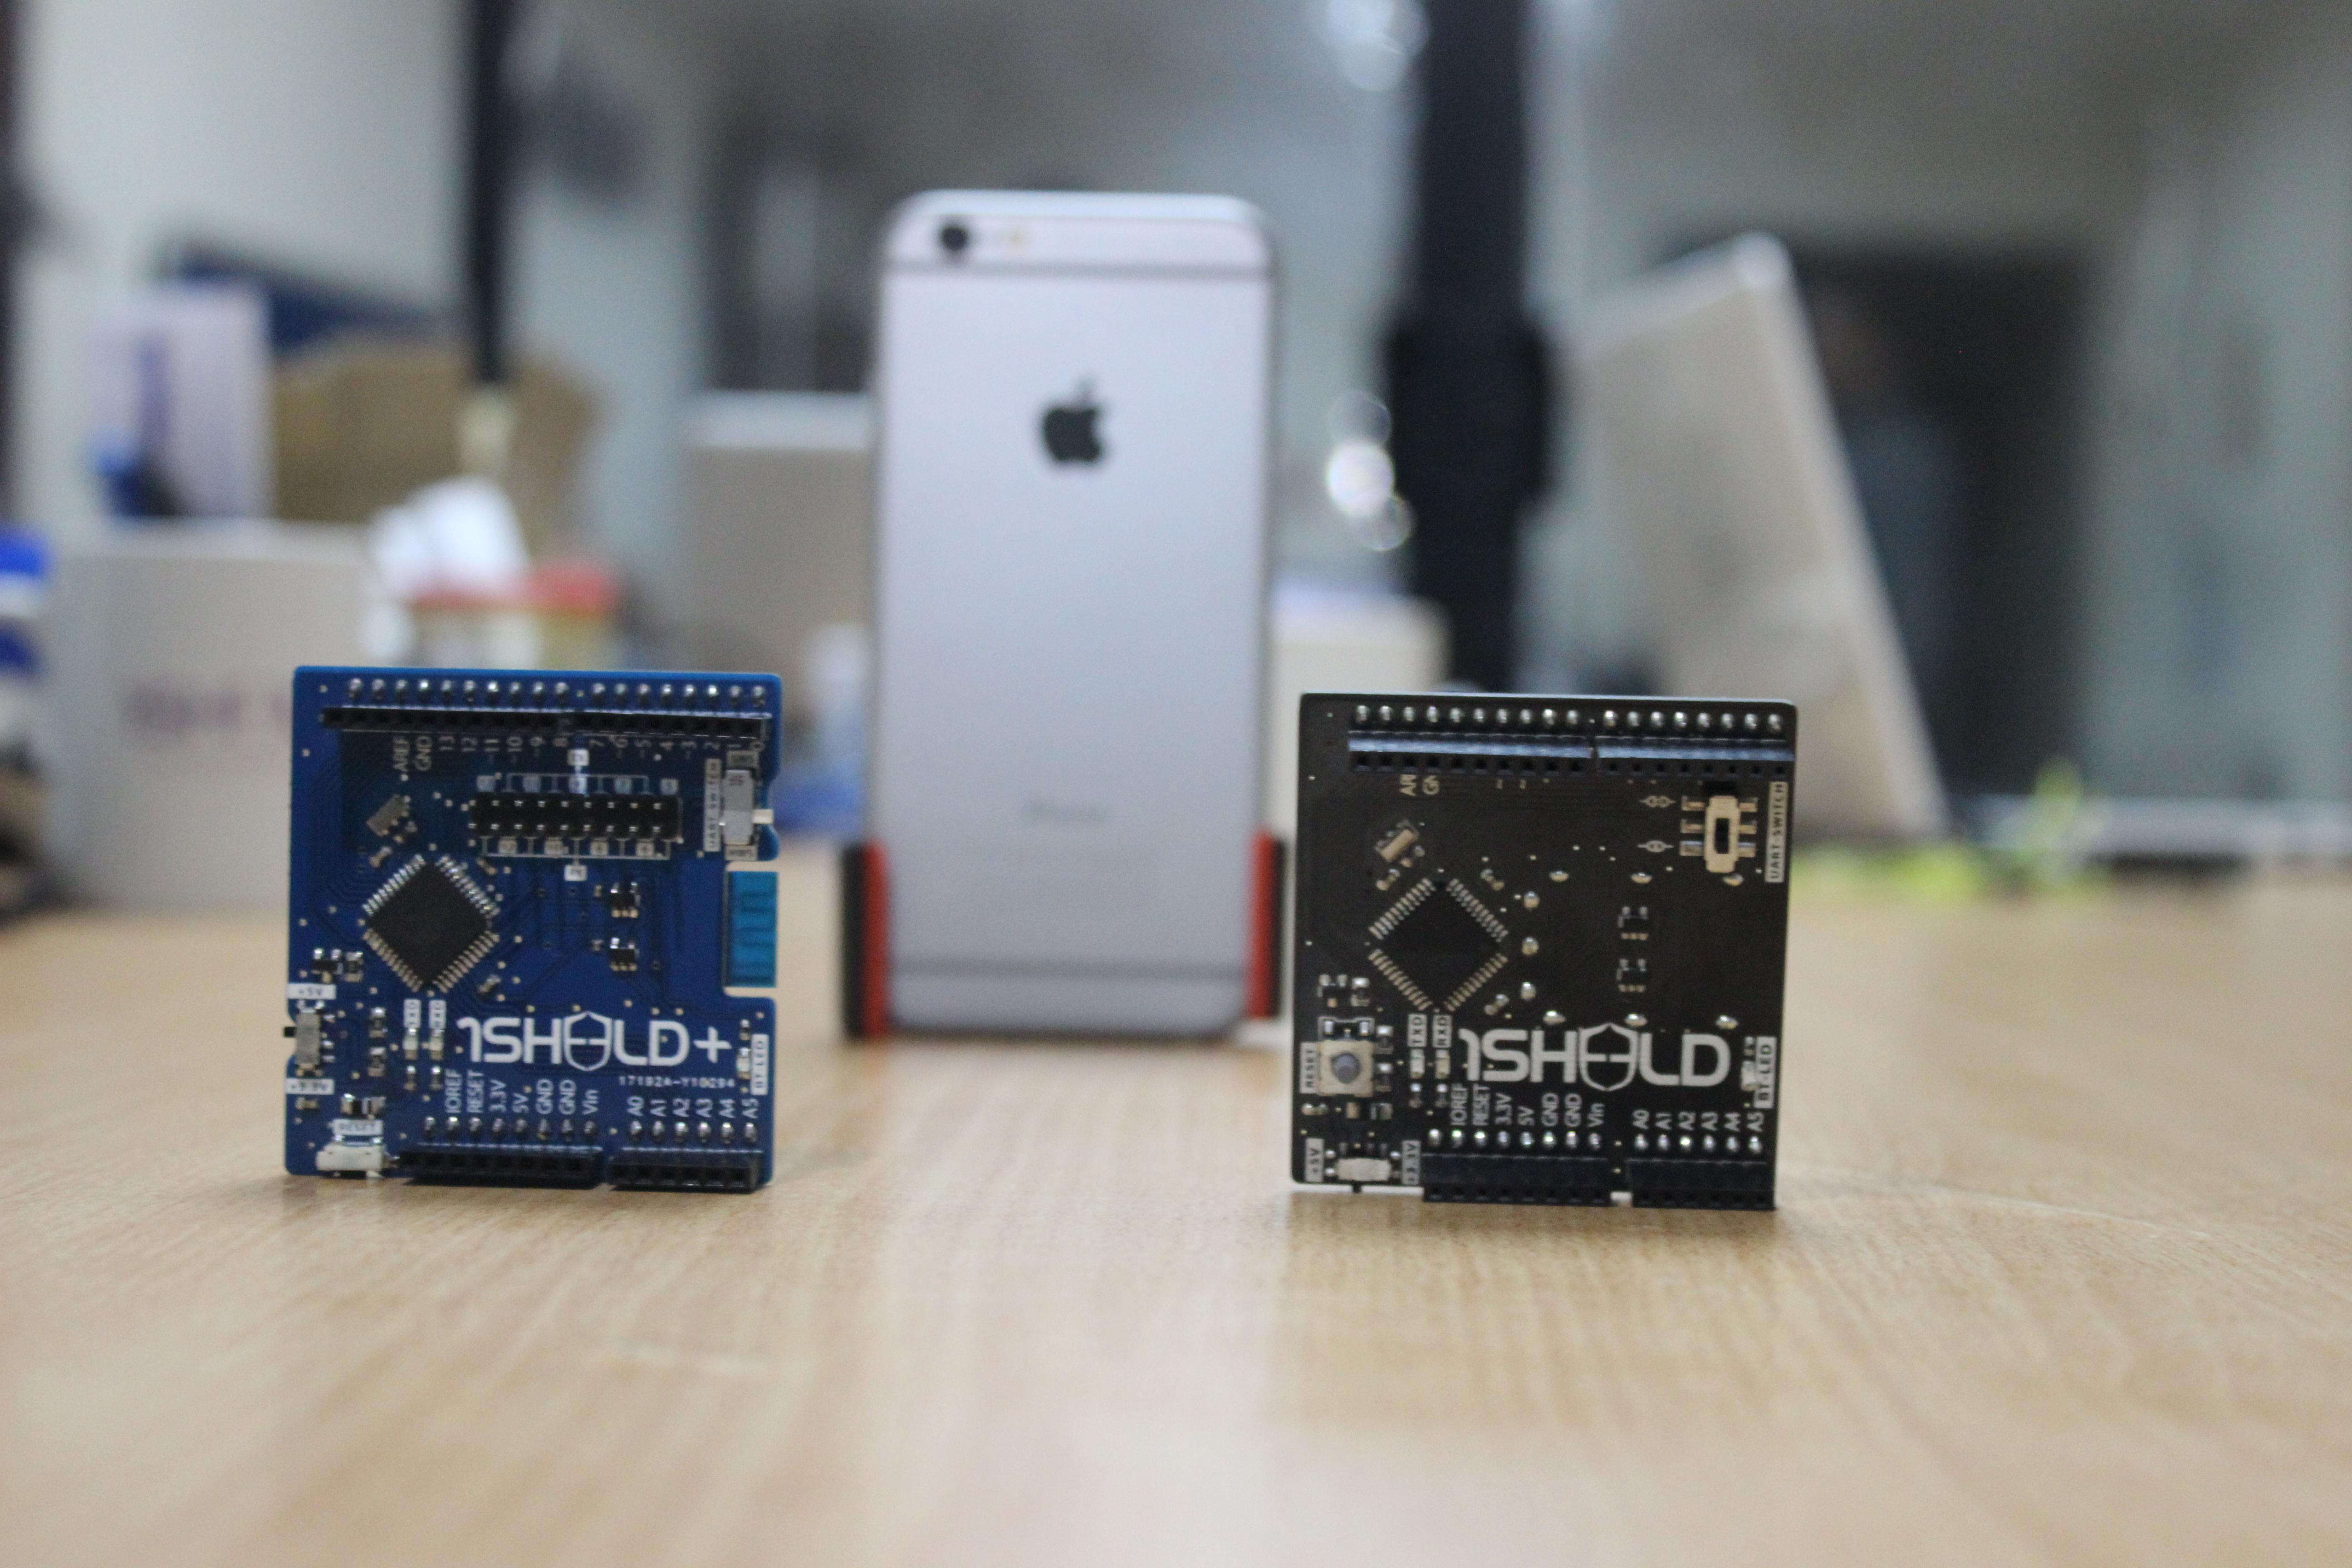 1Sheeld: Build electronics projects with your iOS and Android smartphones